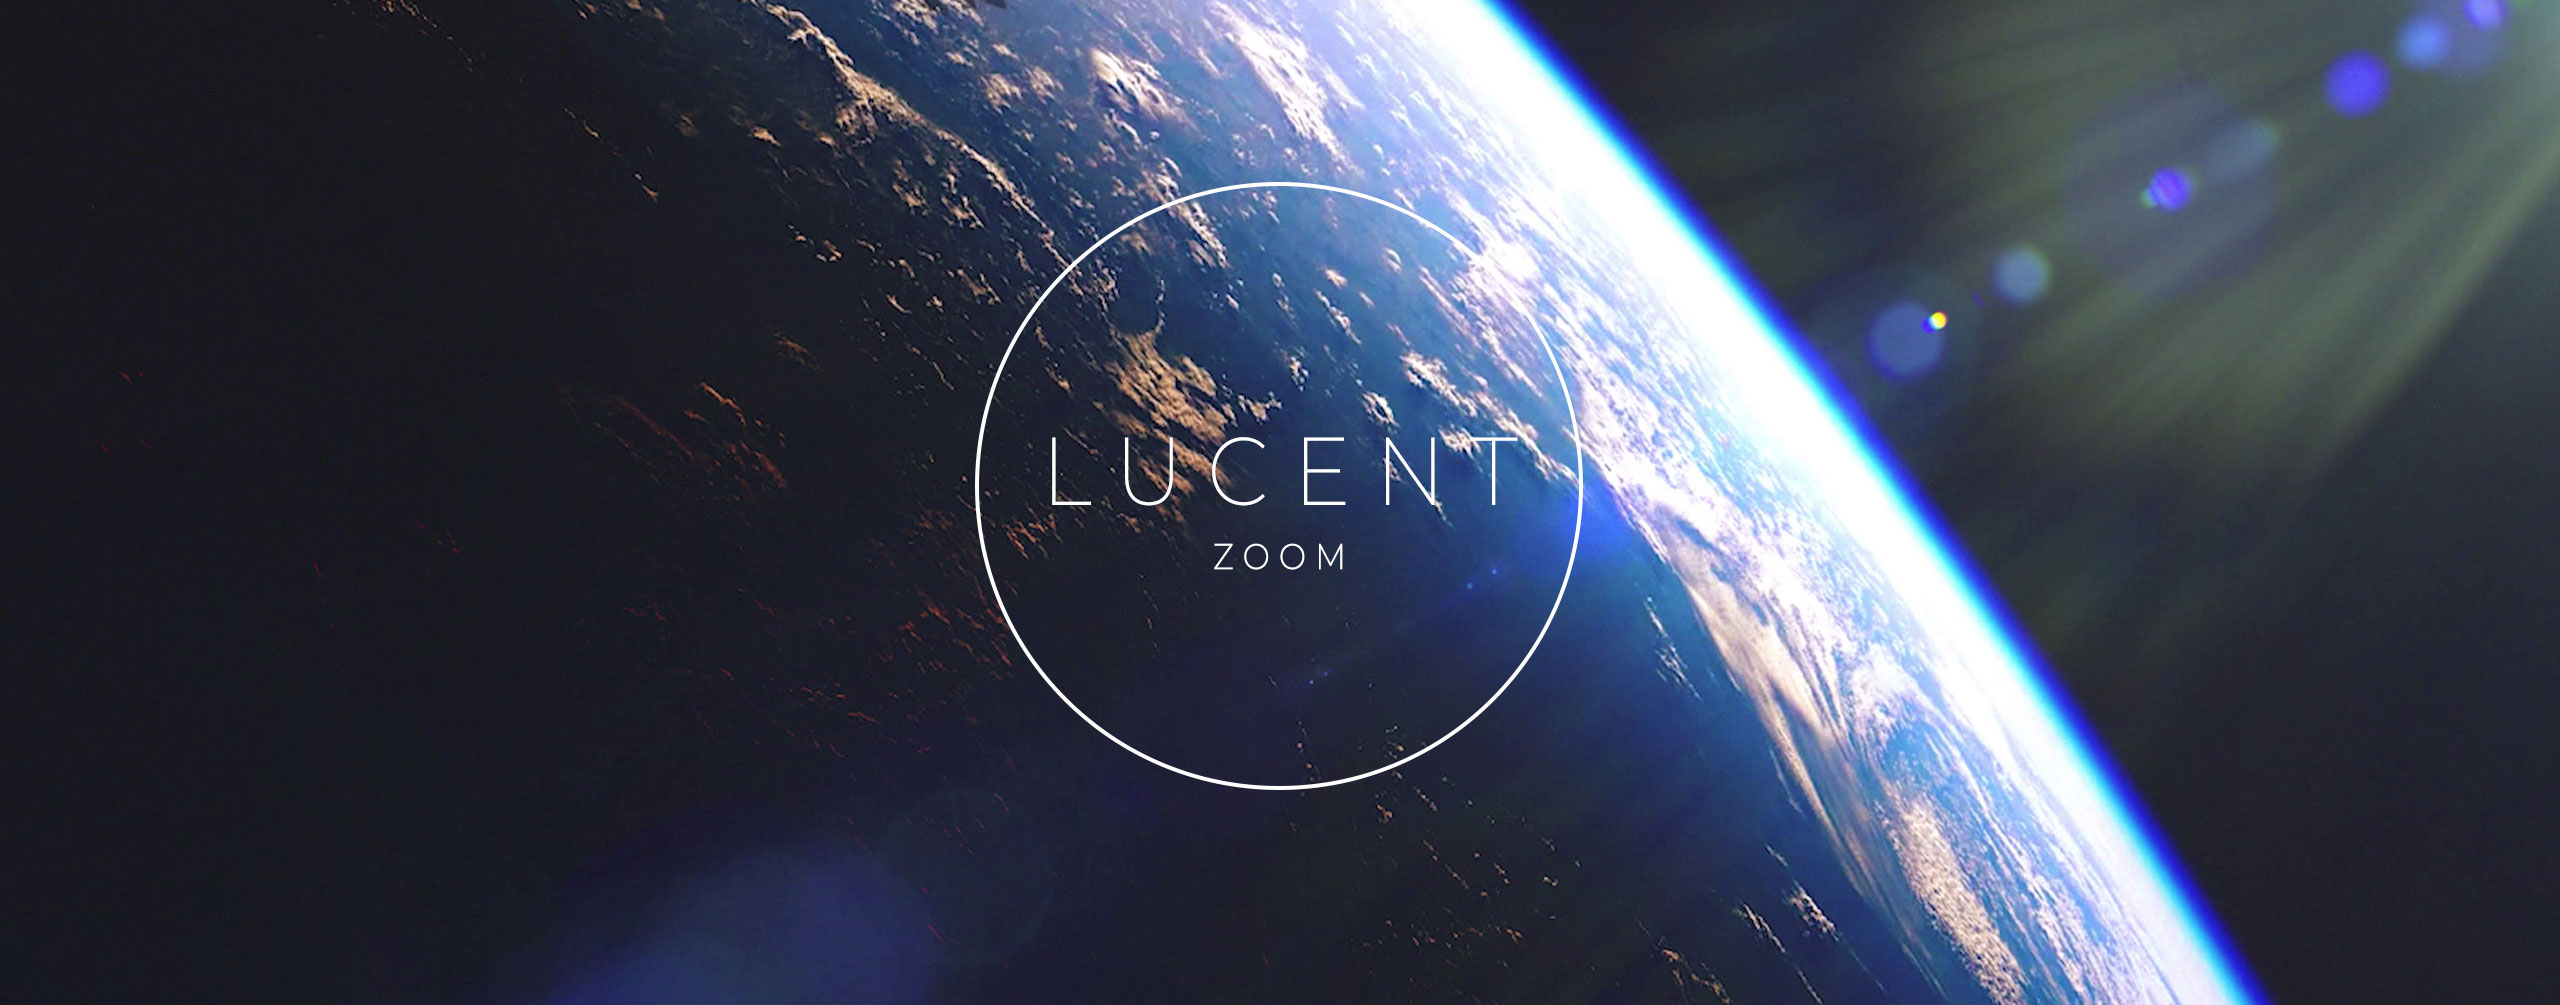 Lucent Zoom - Lens Flares